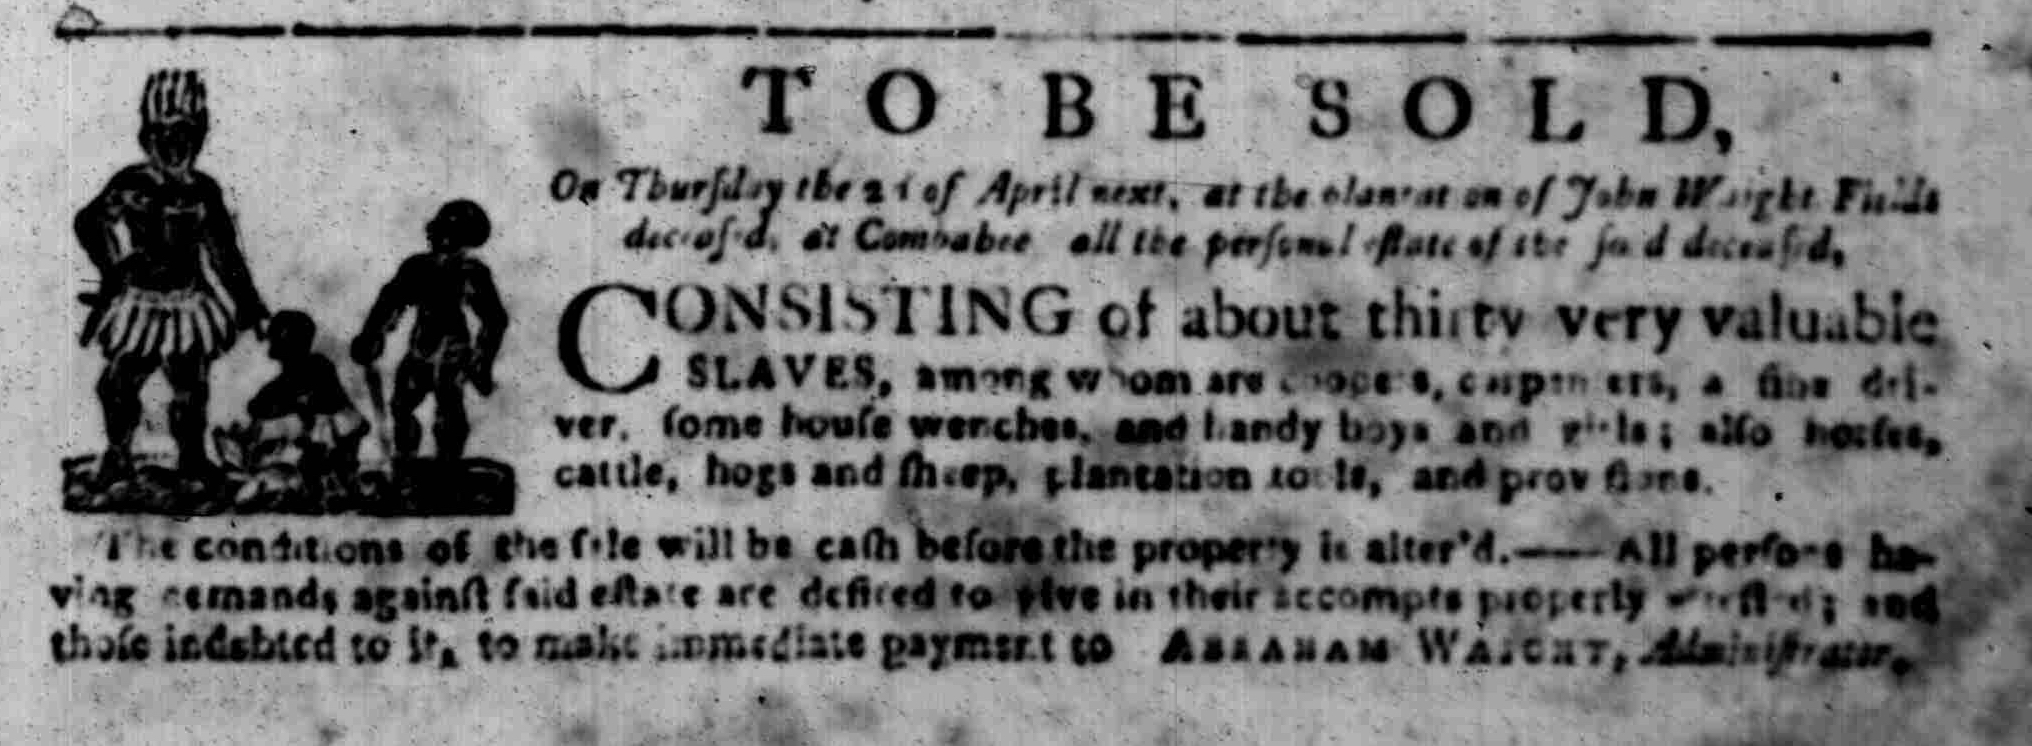 Mar 16 - South Carolina Gazette Supplement Slavery 3